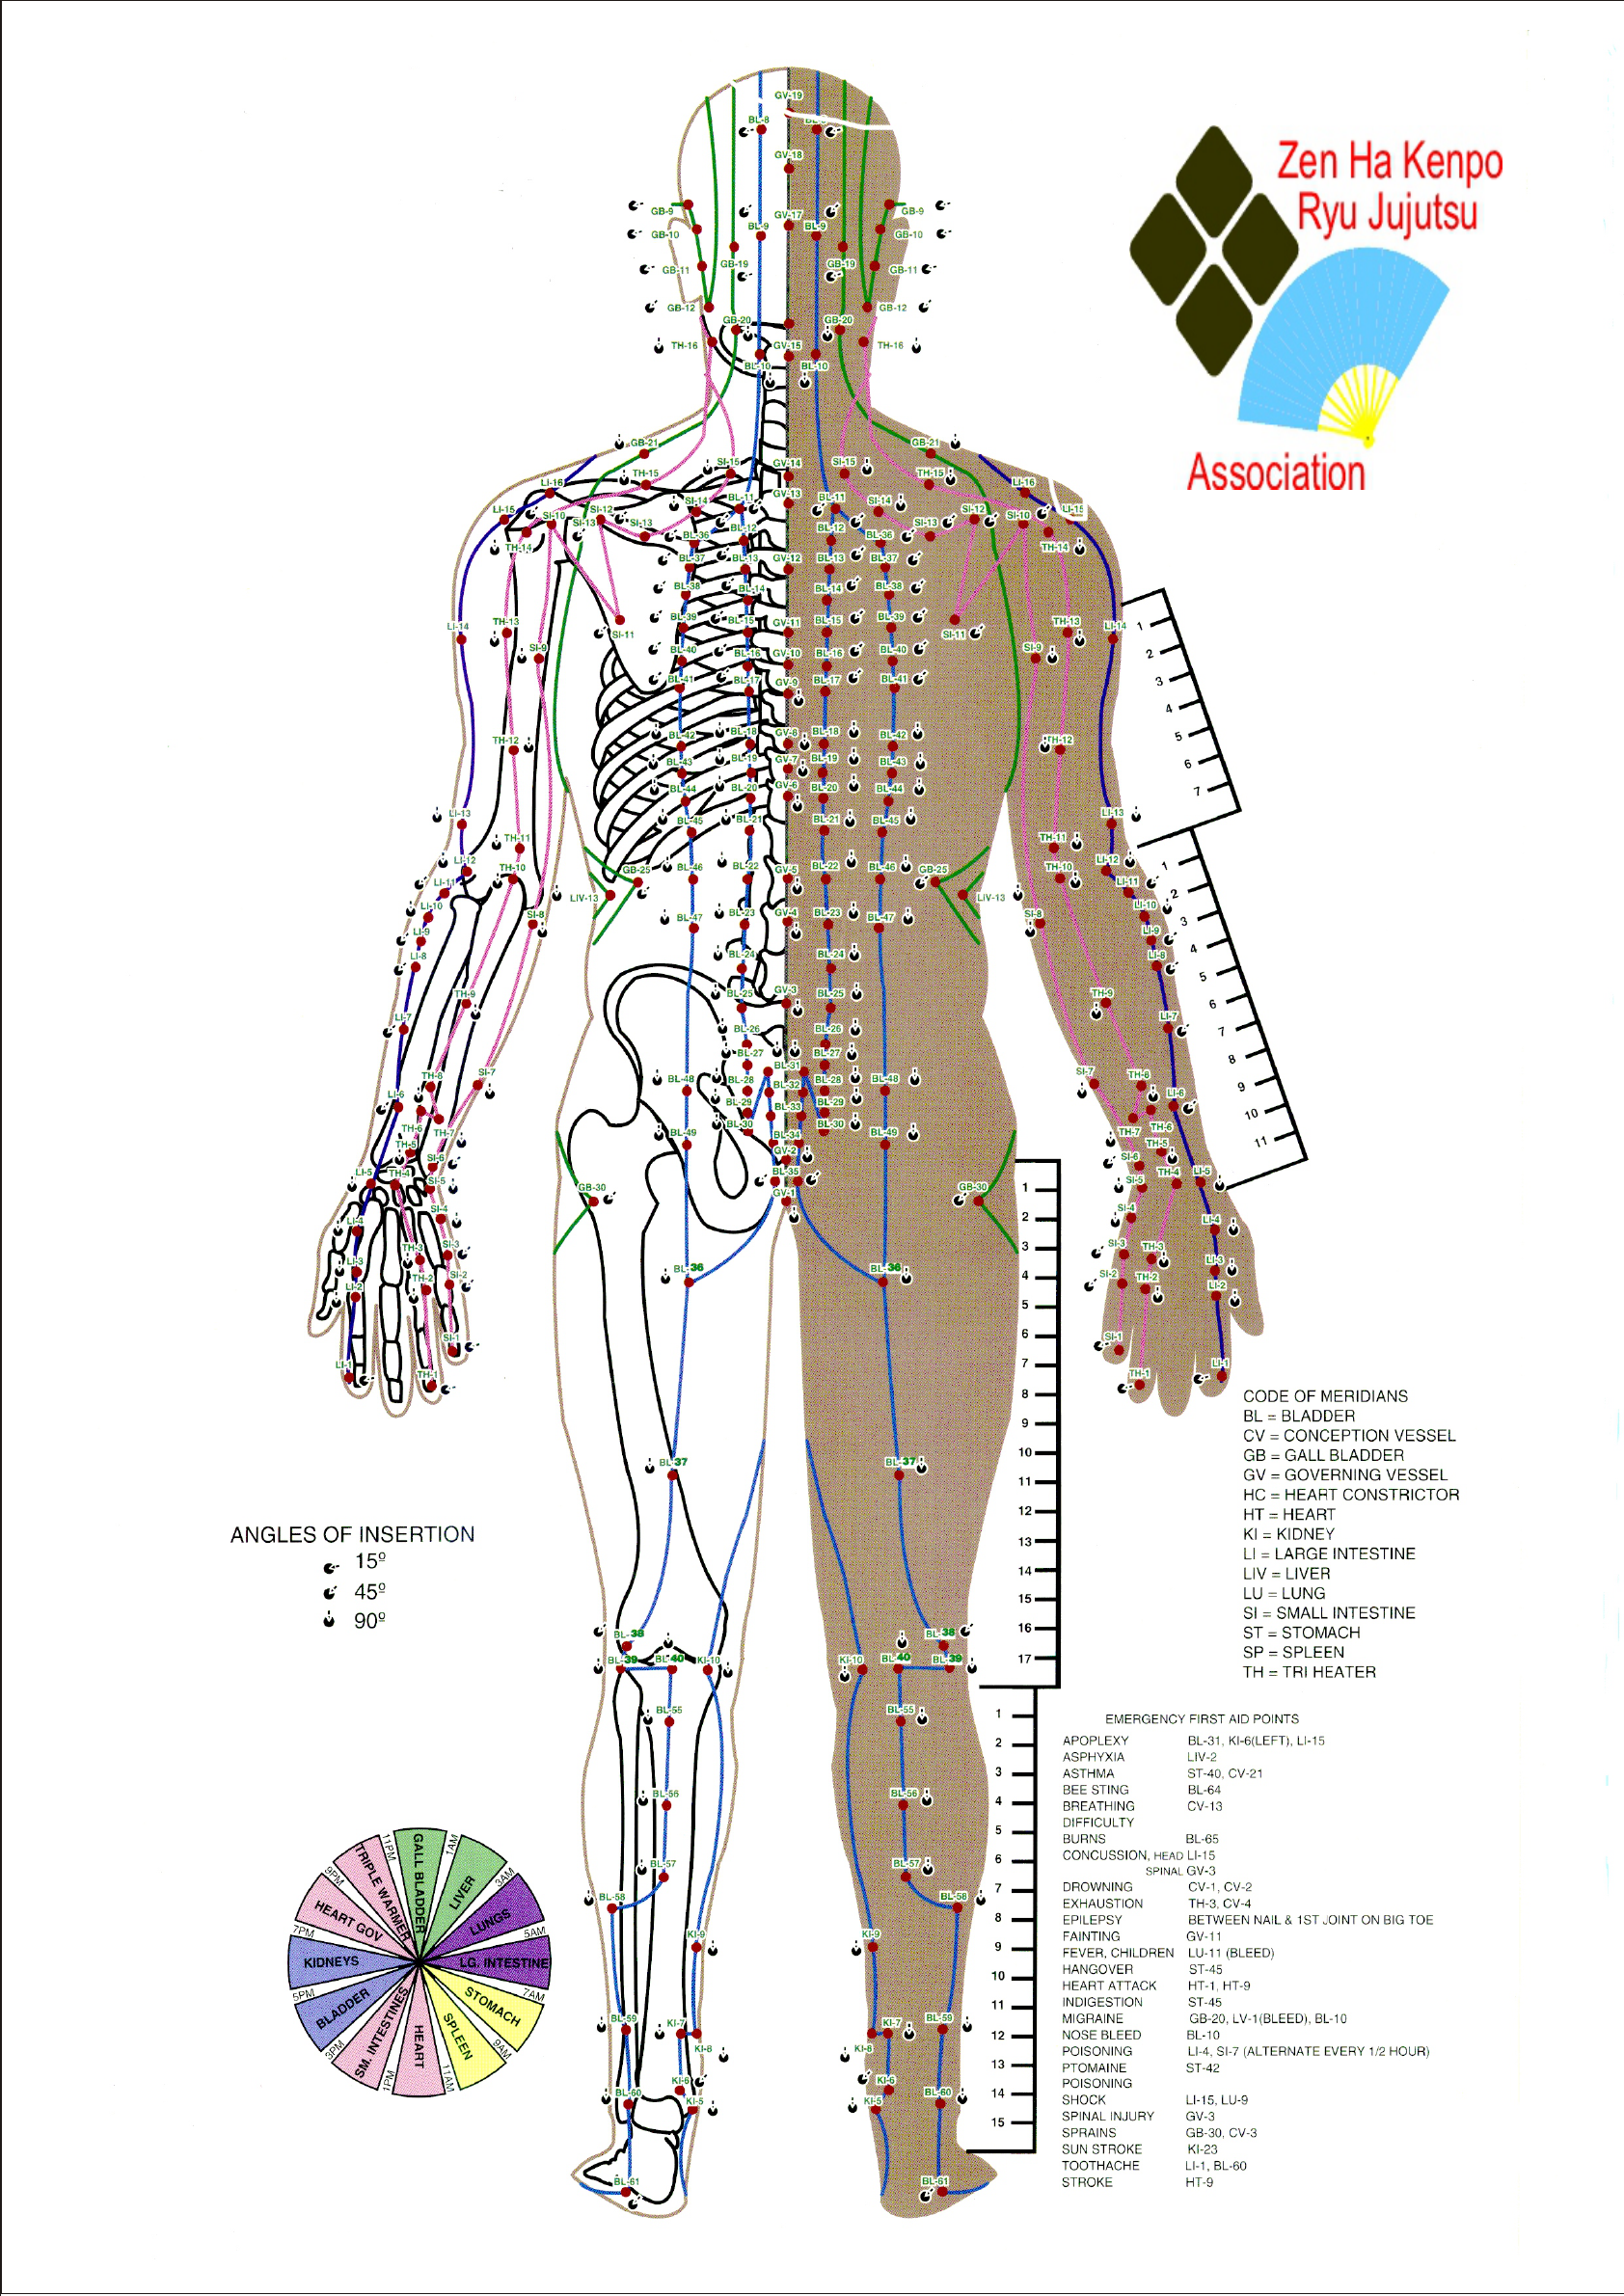 Free Pressure Point Chart Pdf 11480kb 5 Page S Page 2 In 2020 Pressure Points Chart Acupuncture Points Chart Acupressure Chart